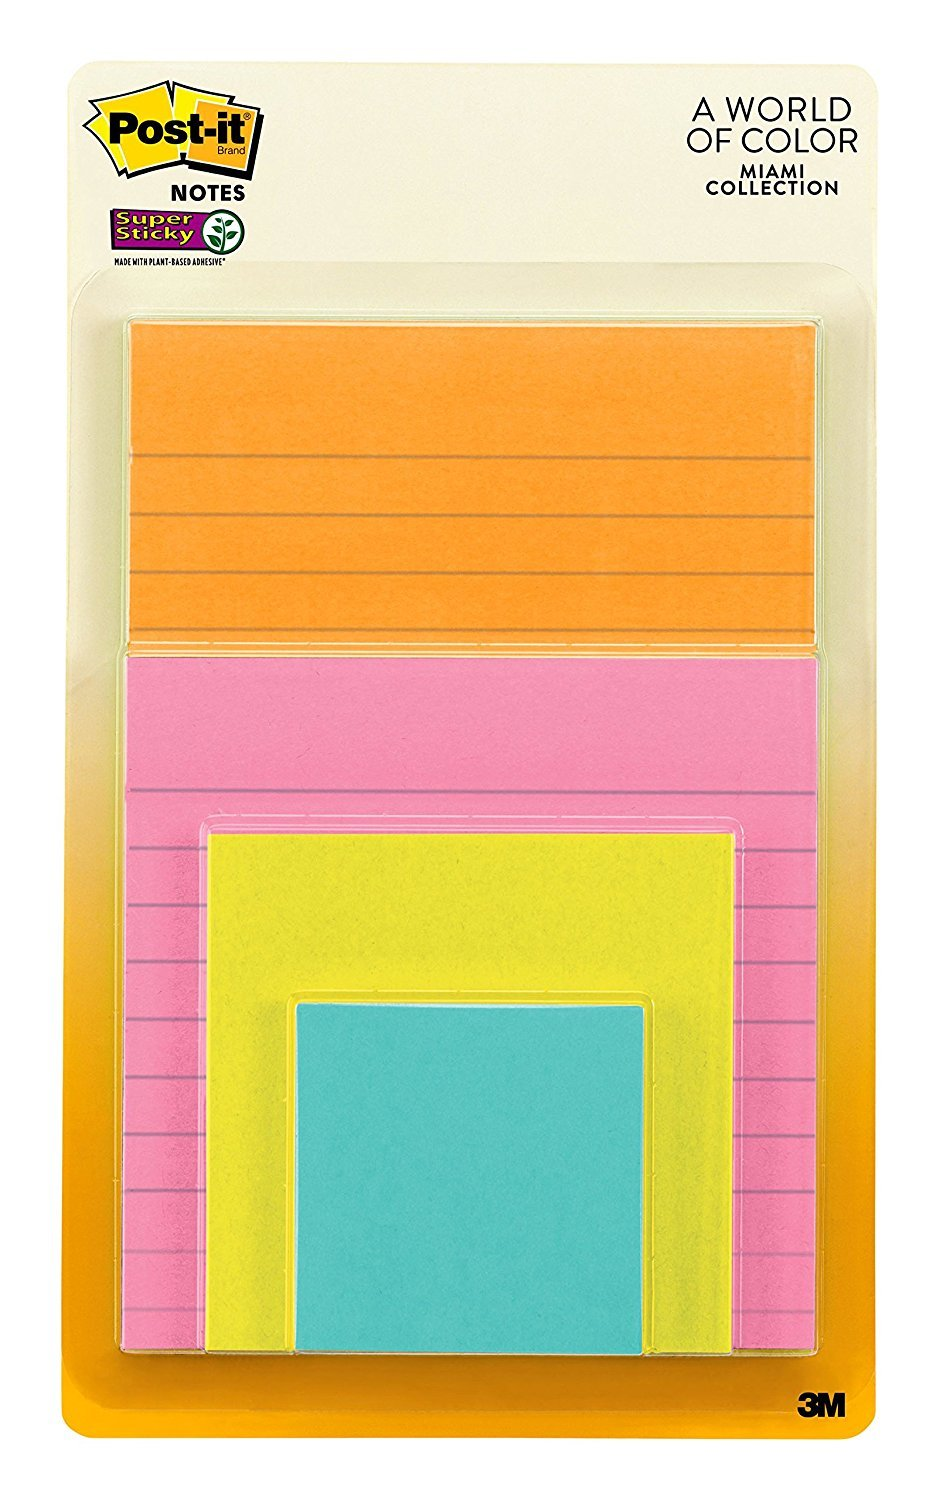 Post-it: Super Sticky Note Pads - Miami Collection (4 Pack) image